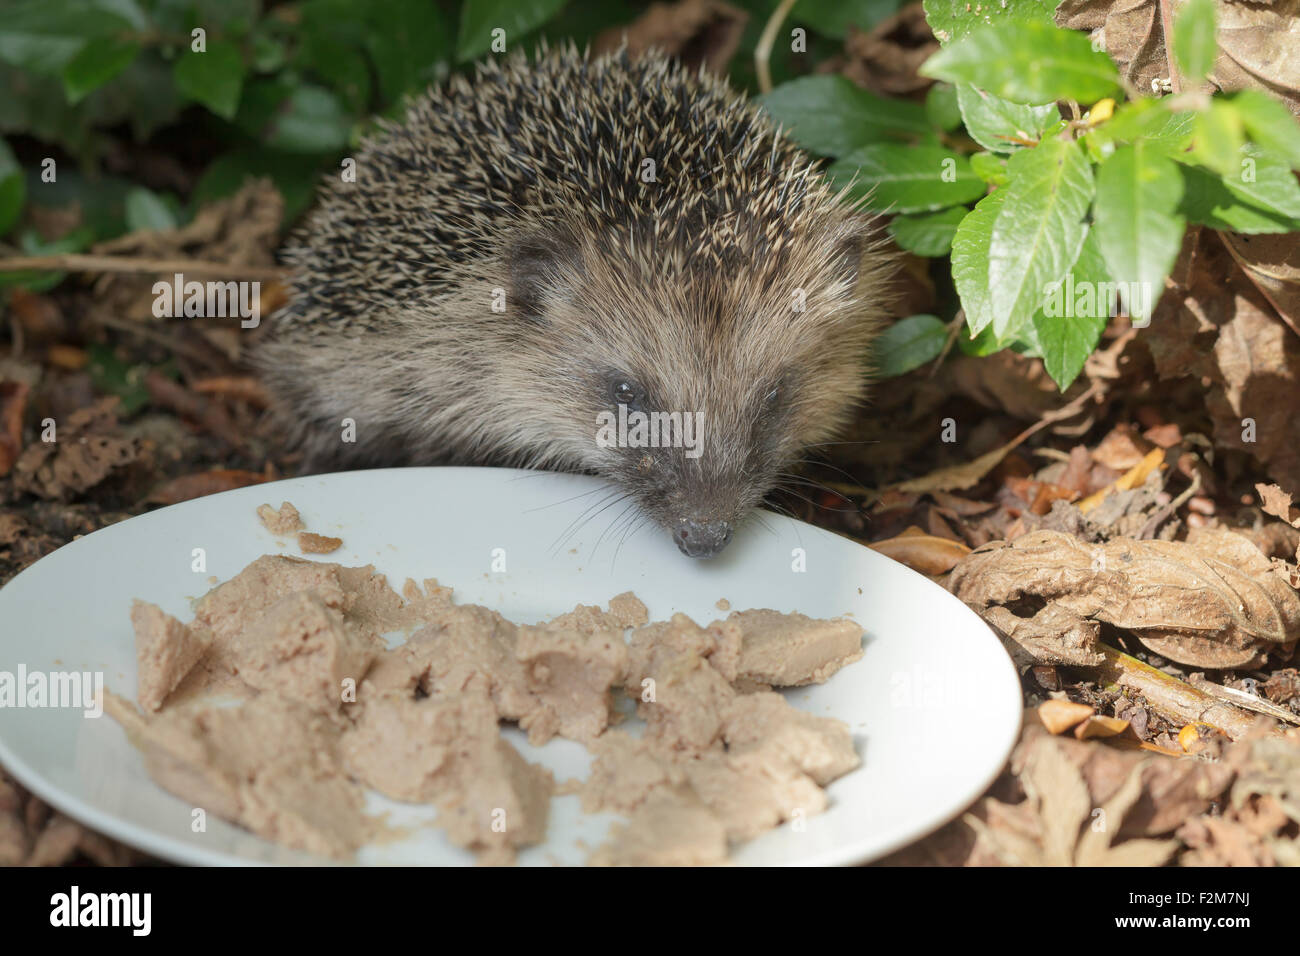 Hedgehog Eating Cat Food Off A Plate In A Garden Stock